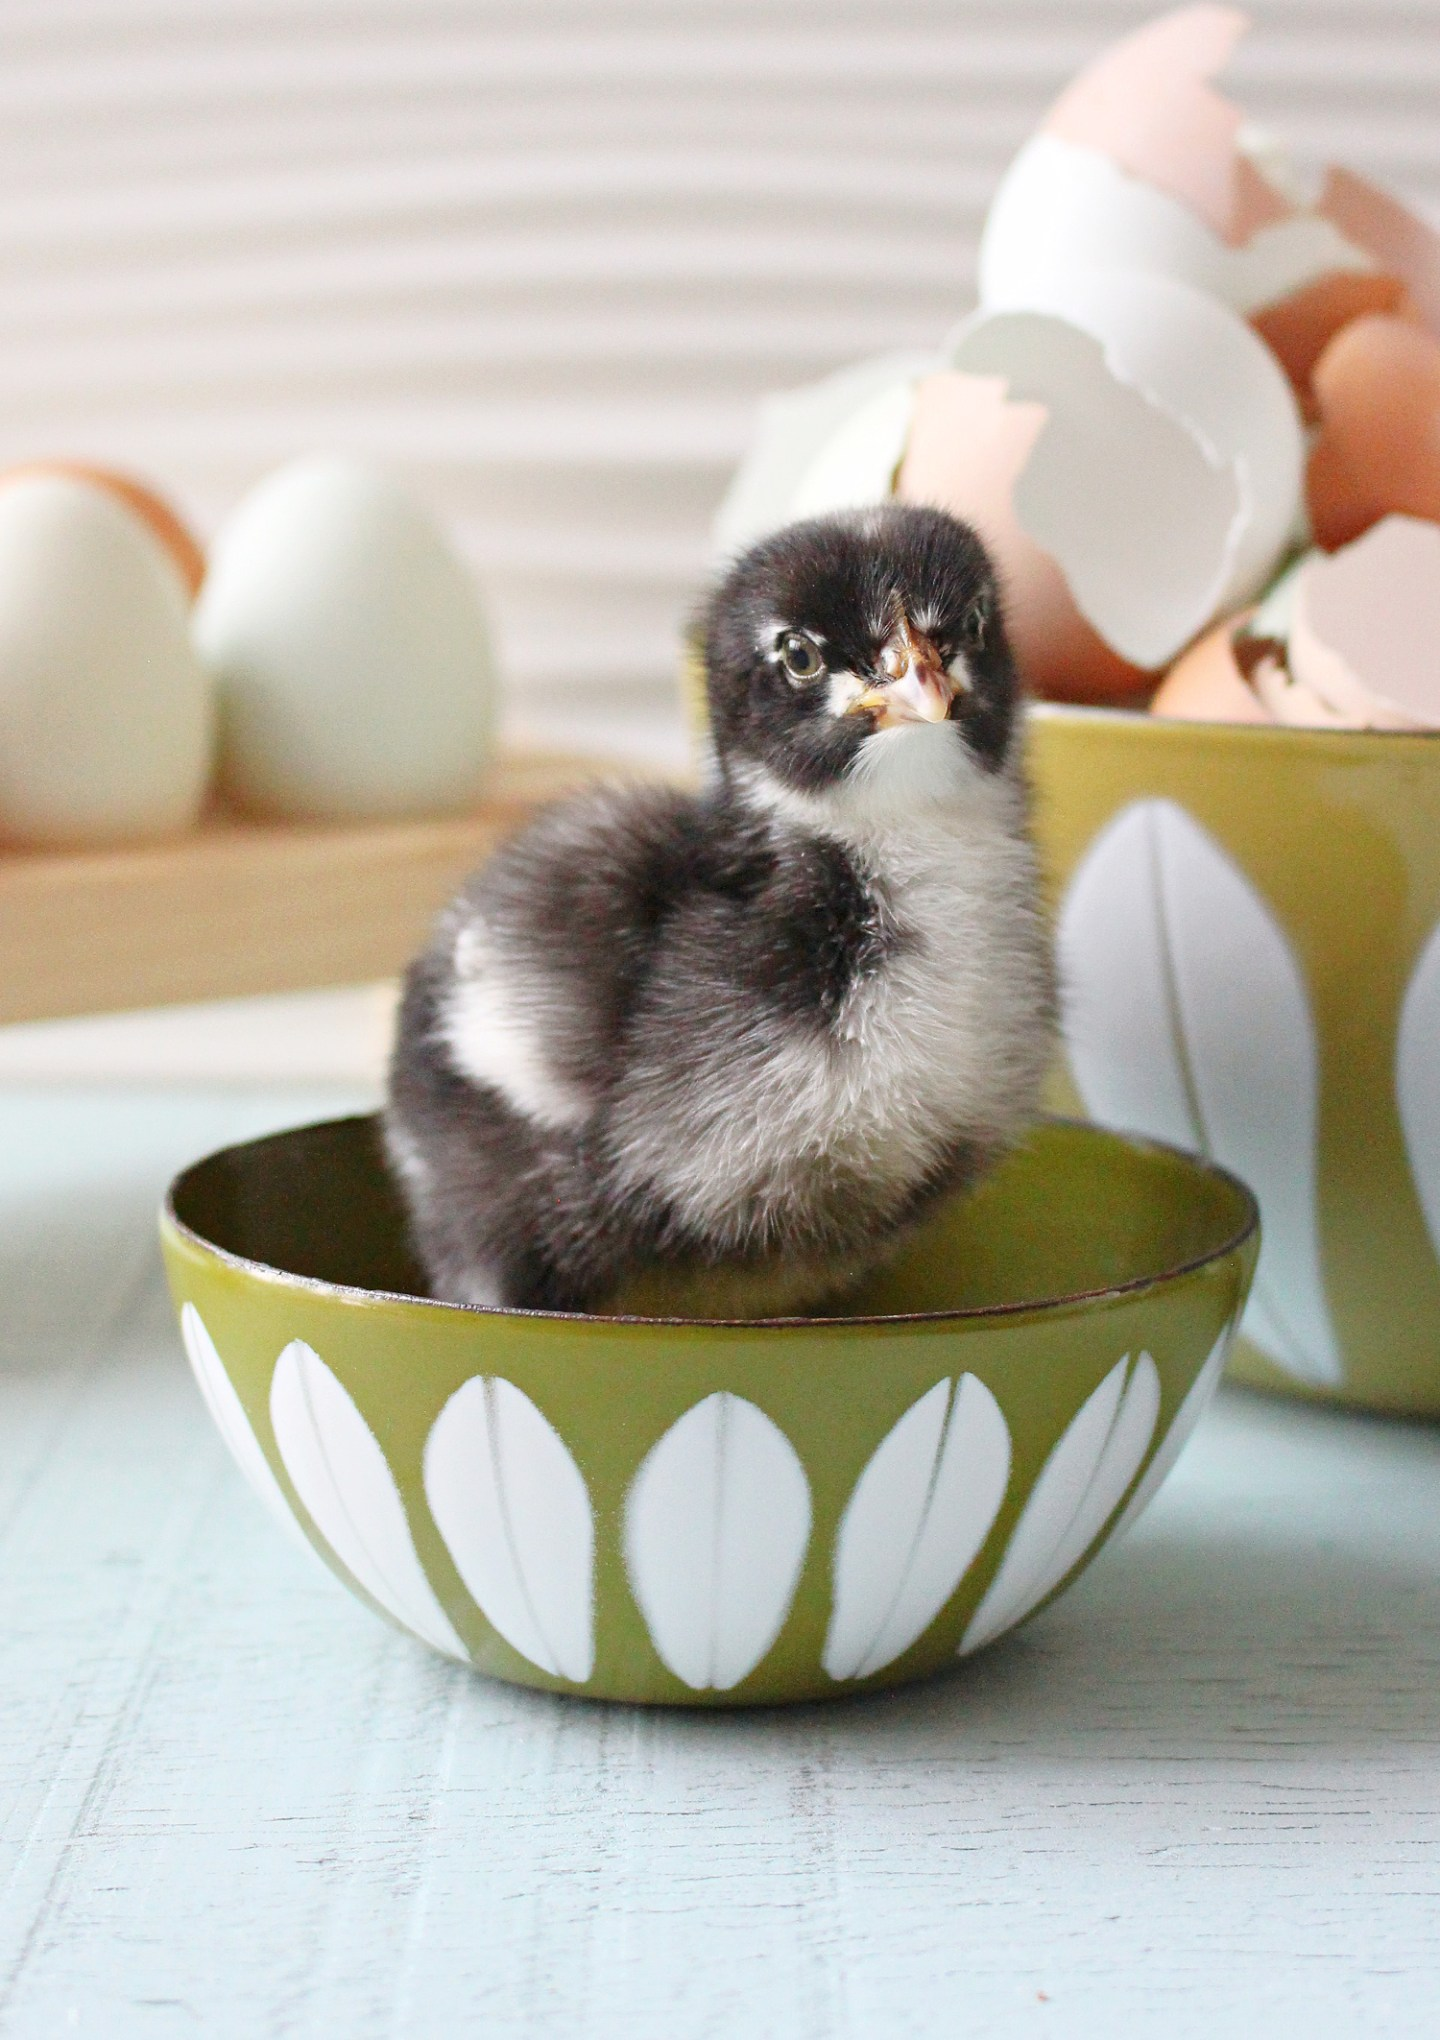 Cute Baby Chick Photos